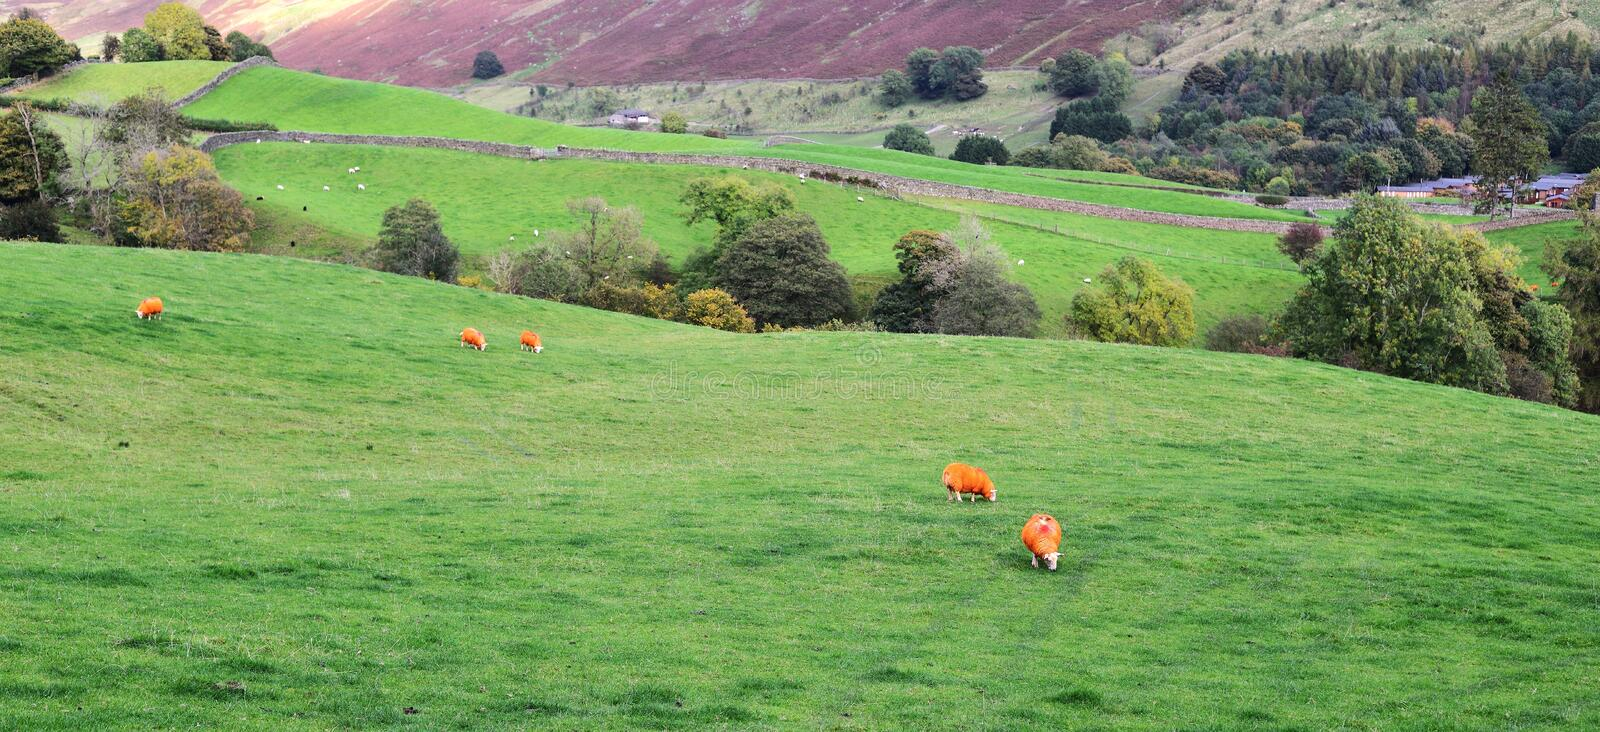 Download Orange Sheep In The Countryside Stock Image - Image: 83715847